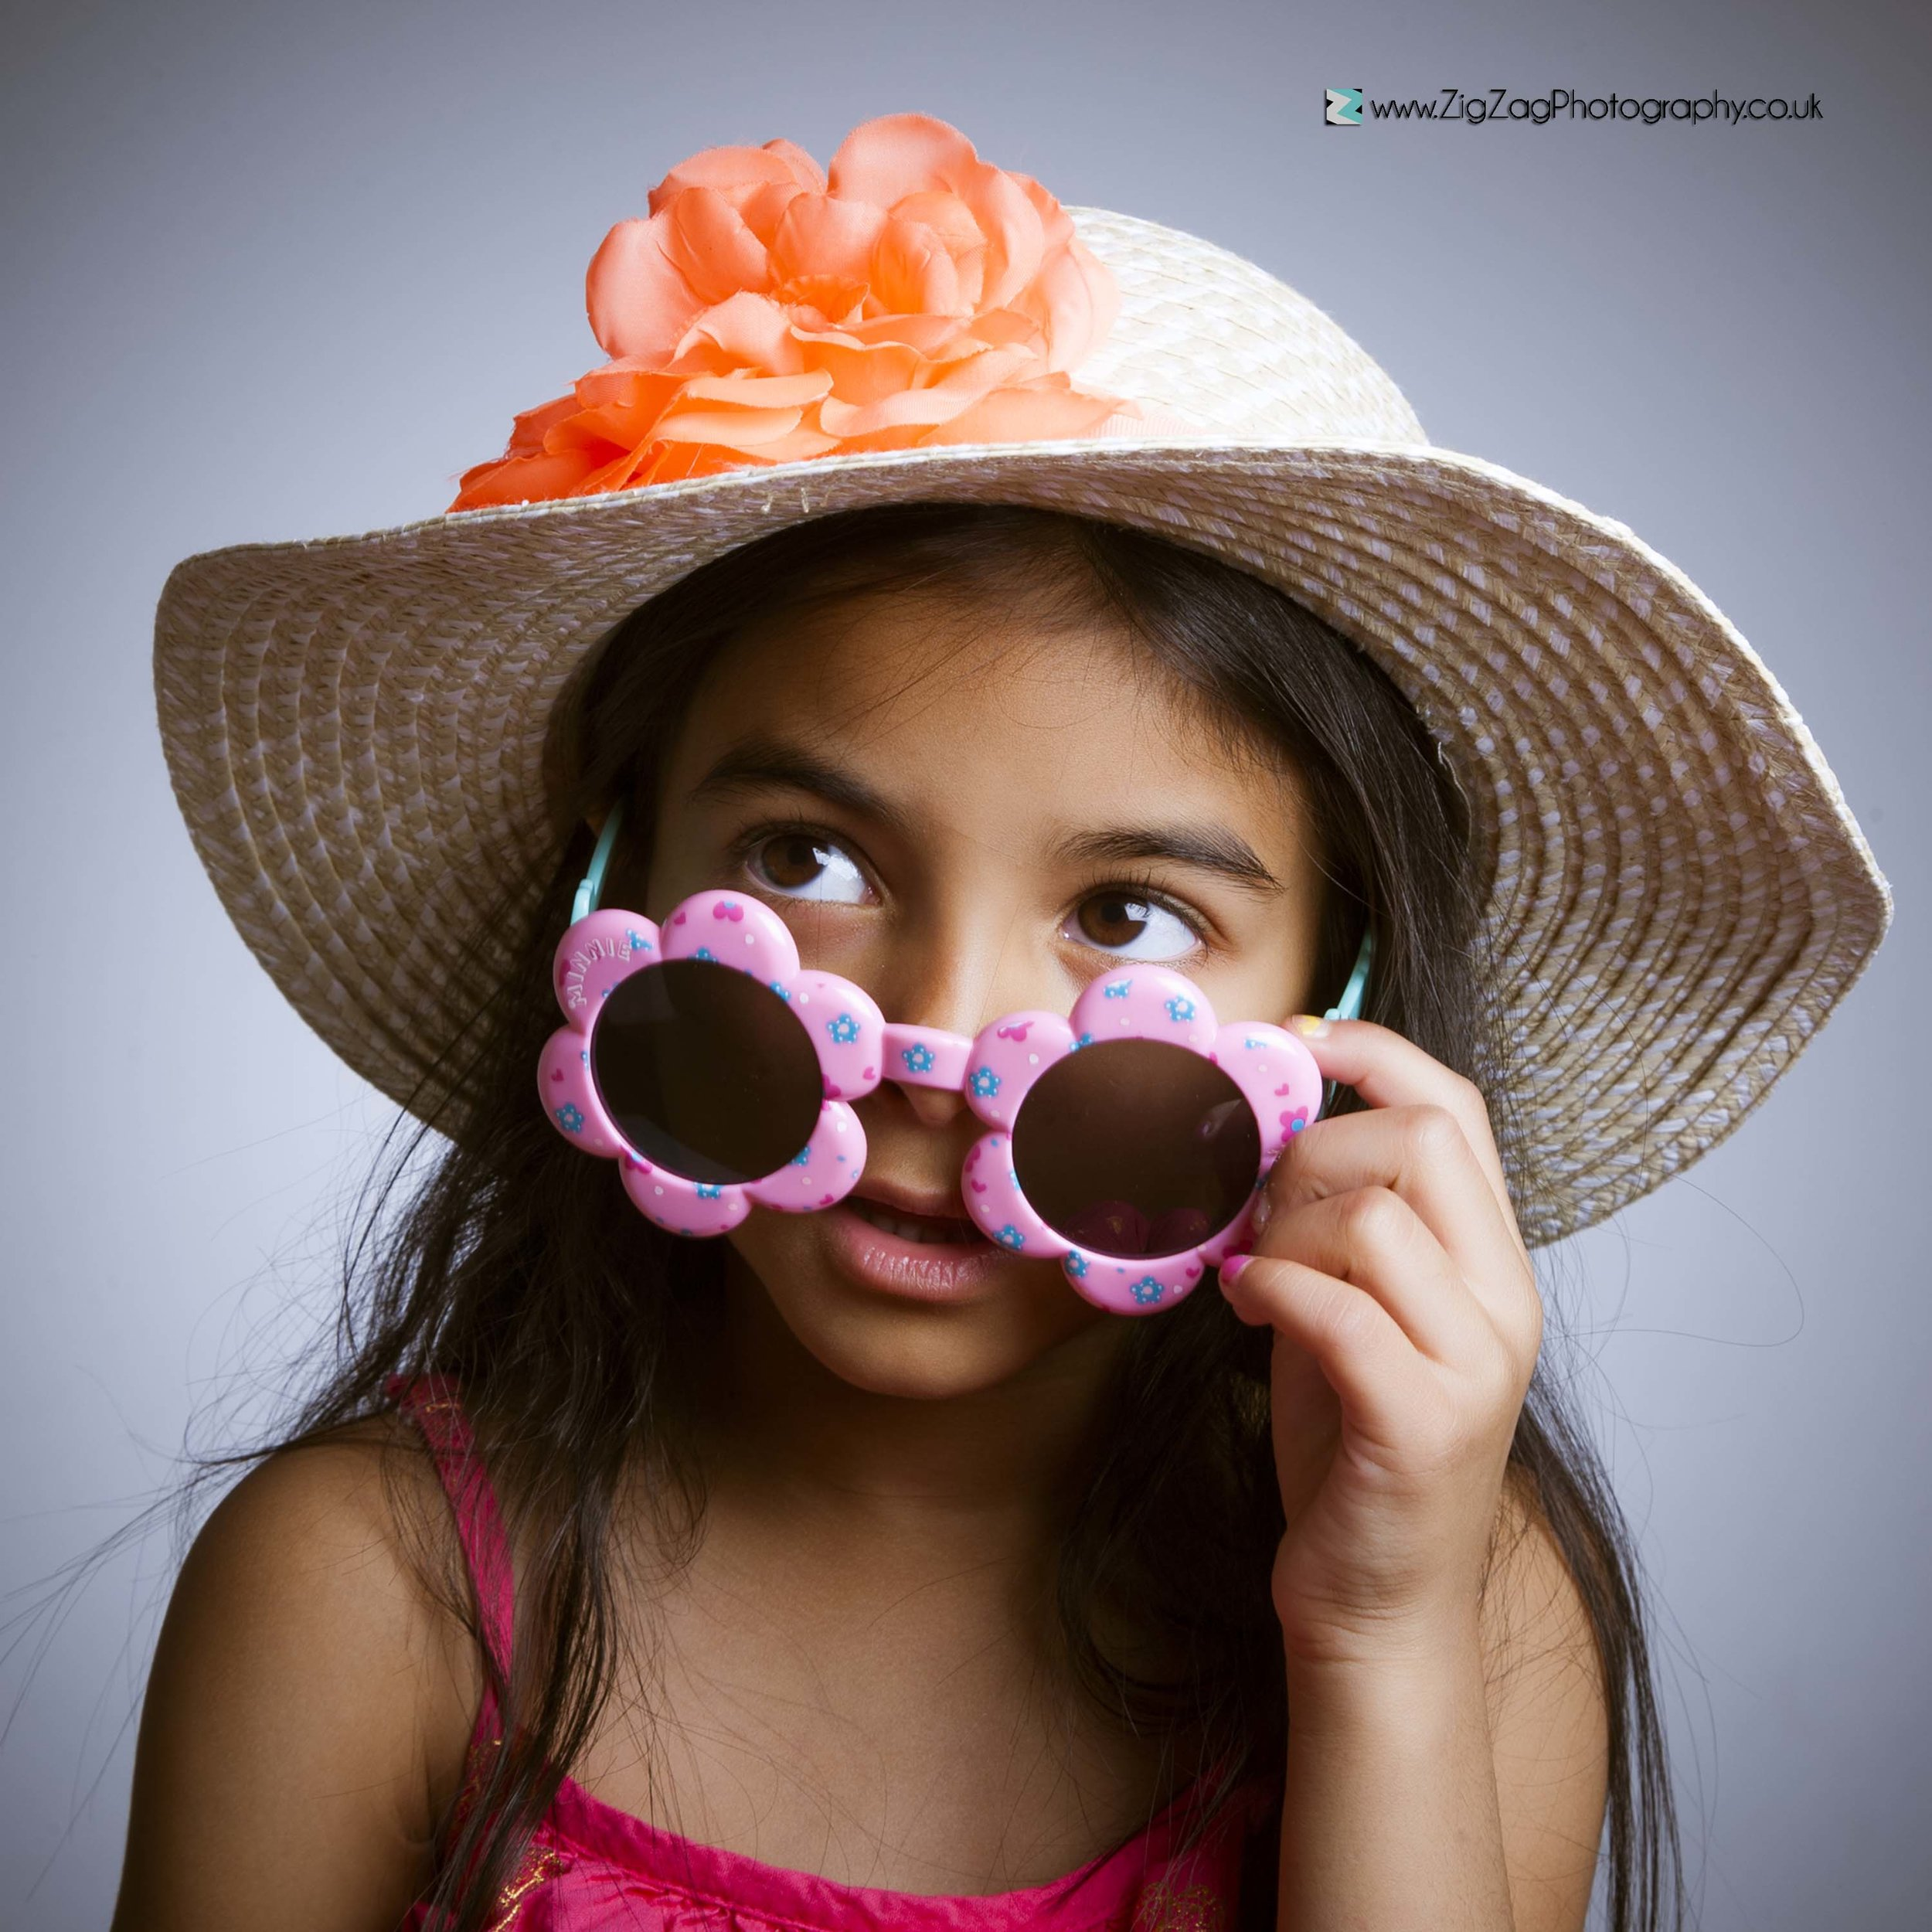 photography-studio-leicester-photography-zigzag-hat-sunglasses-child-girl-ideas-props-unusual.jpg